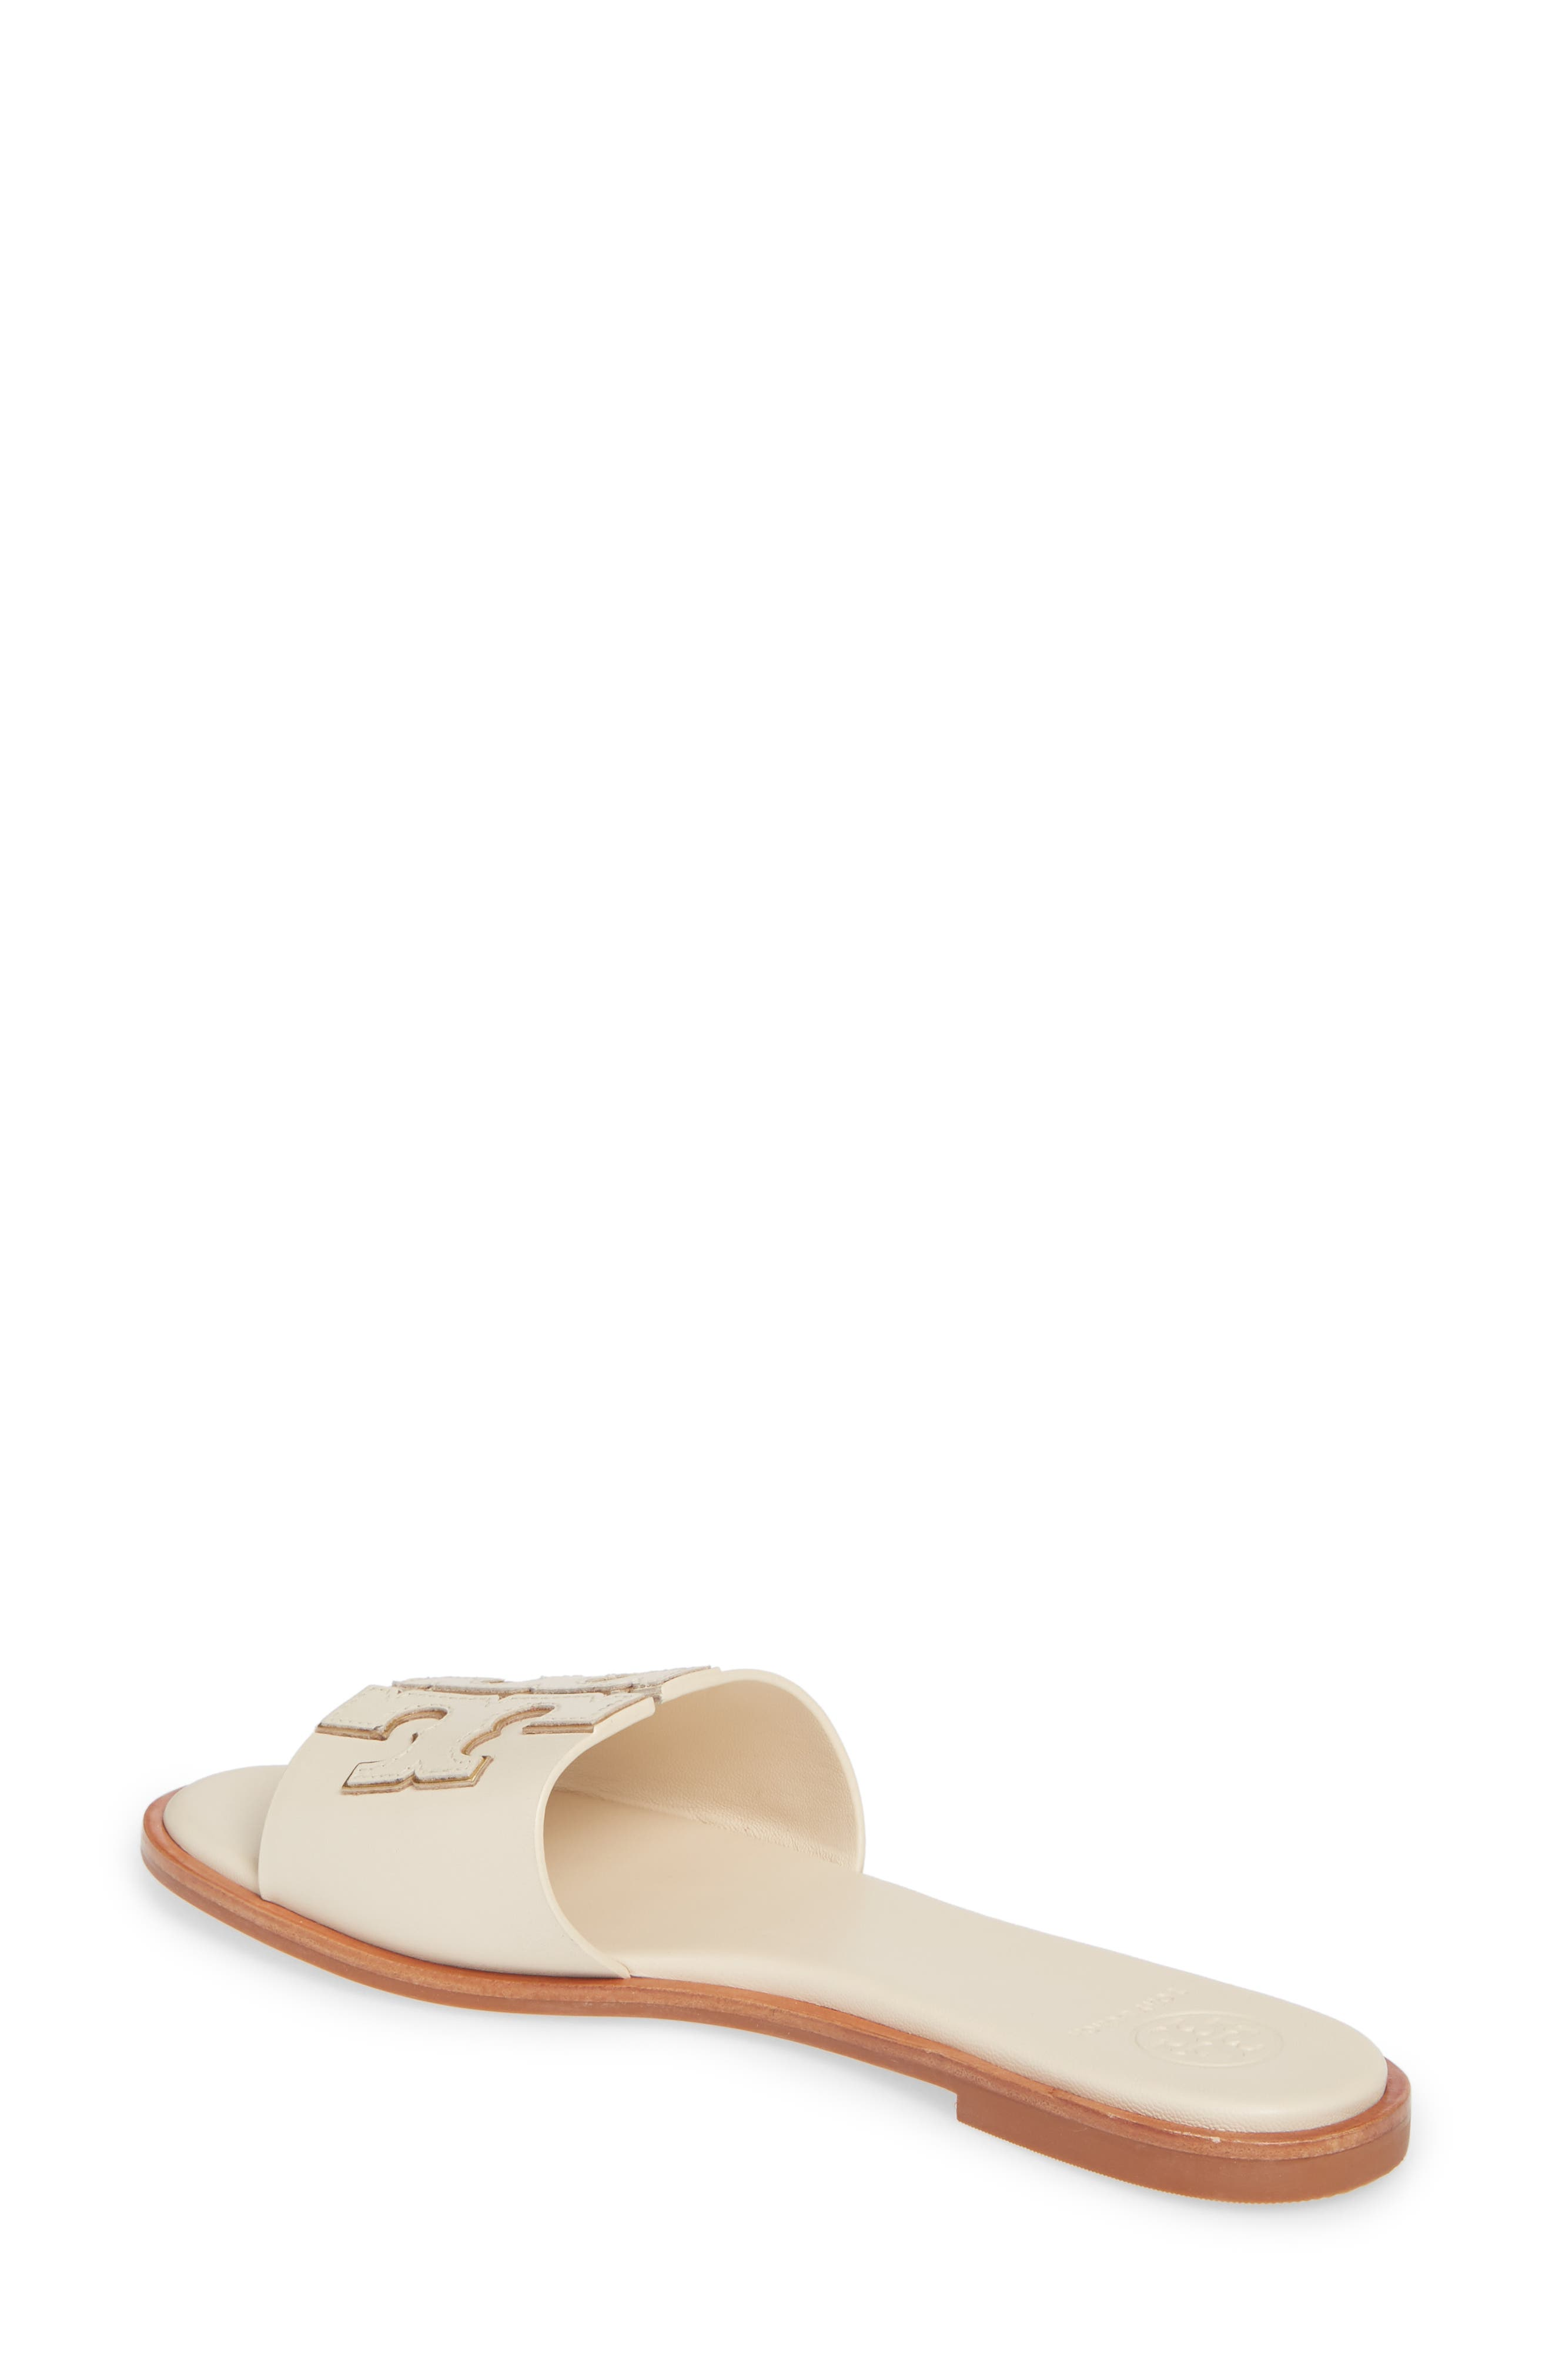 TORY BURCH, Ines Slide Sandal, Alternate thumbnail 2, color, NEW CREAM/ GOLD